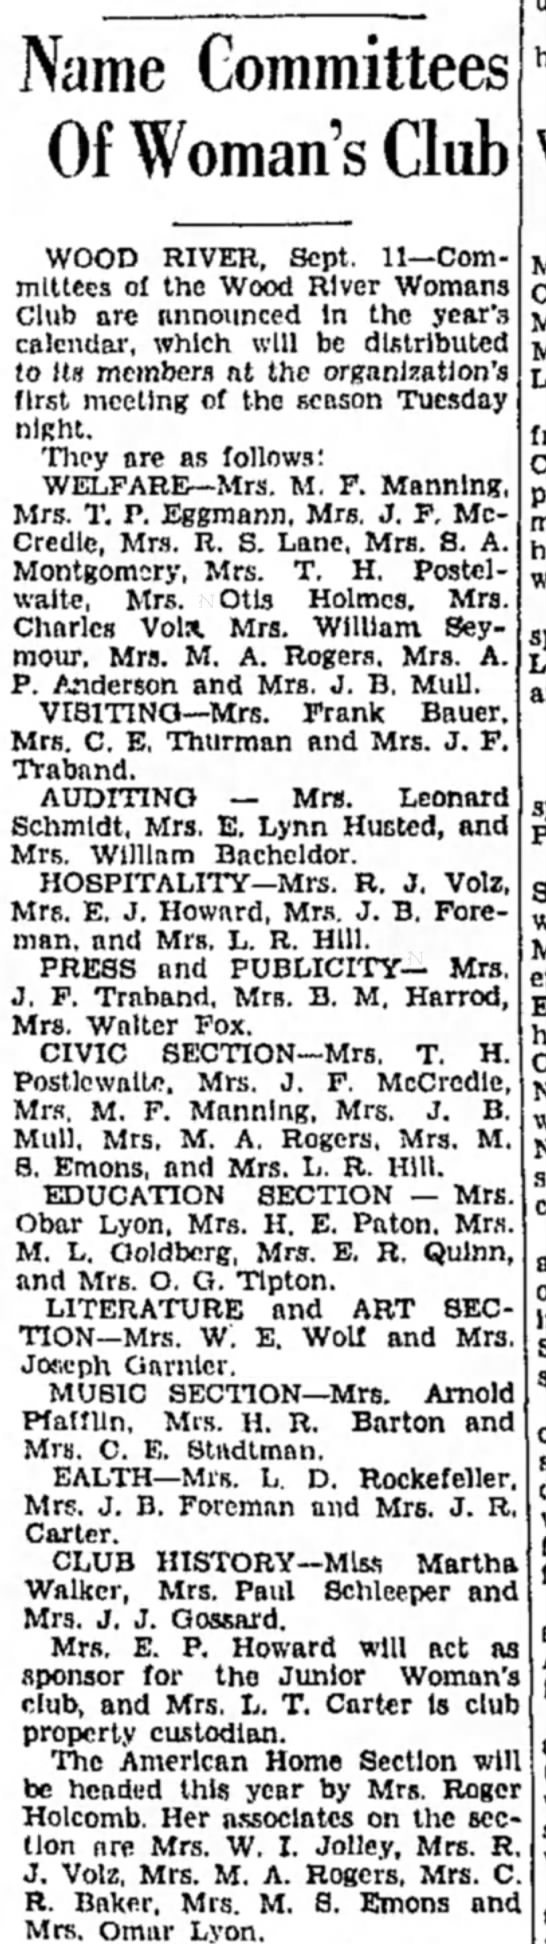 Mrs M F Manning - Name Committees Of Woman's Club WOOD RIVER,...